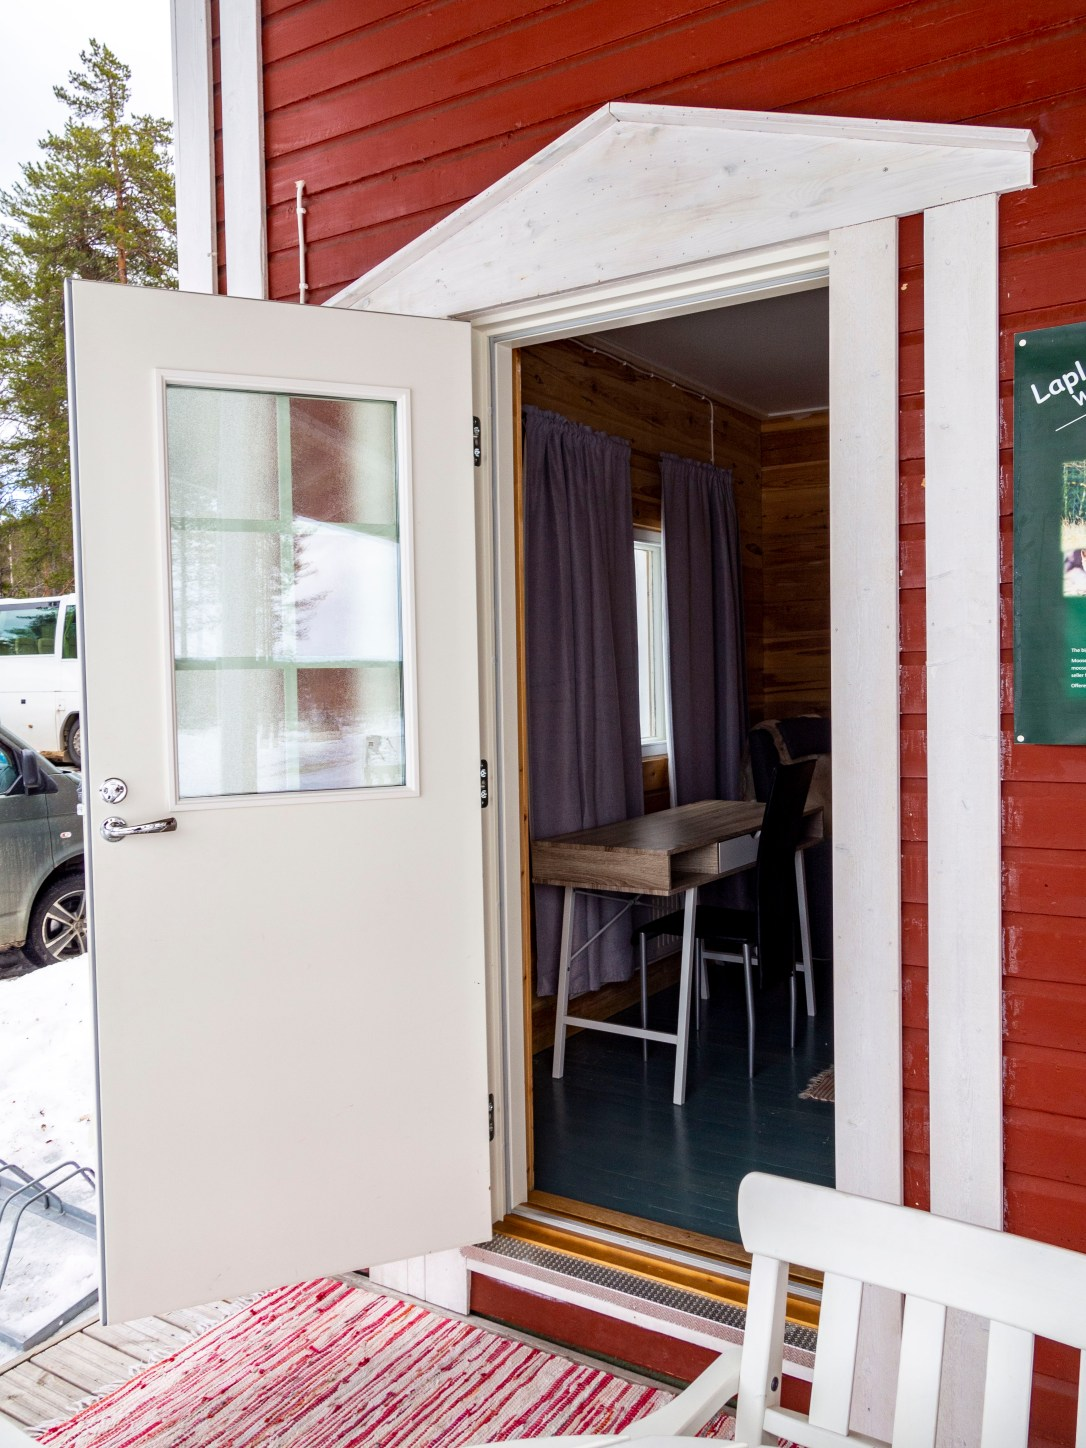 Hotel Katkavaara Aurora Apartments and Snow Igloos Northern Light room with own entrance